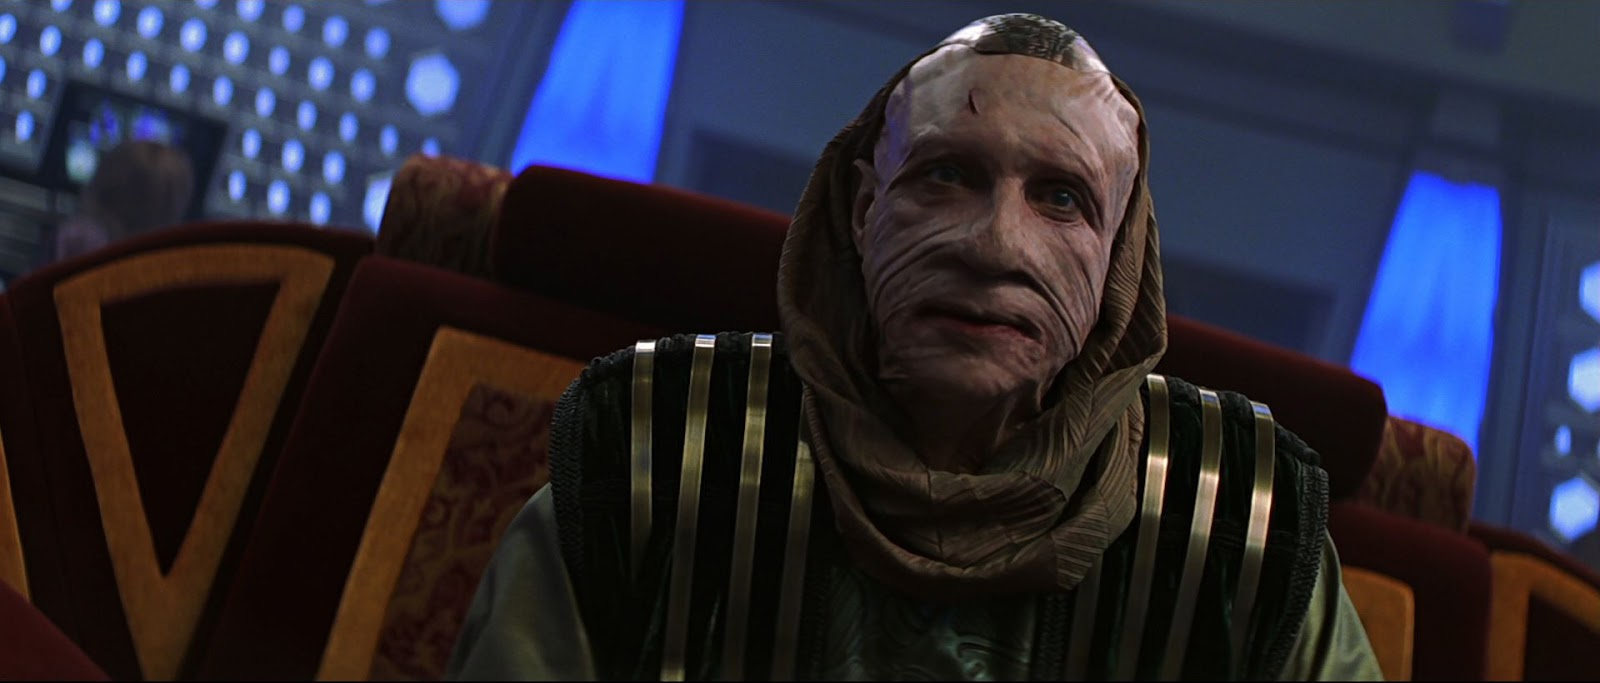 Star Trek: Insurrection Bad Guy